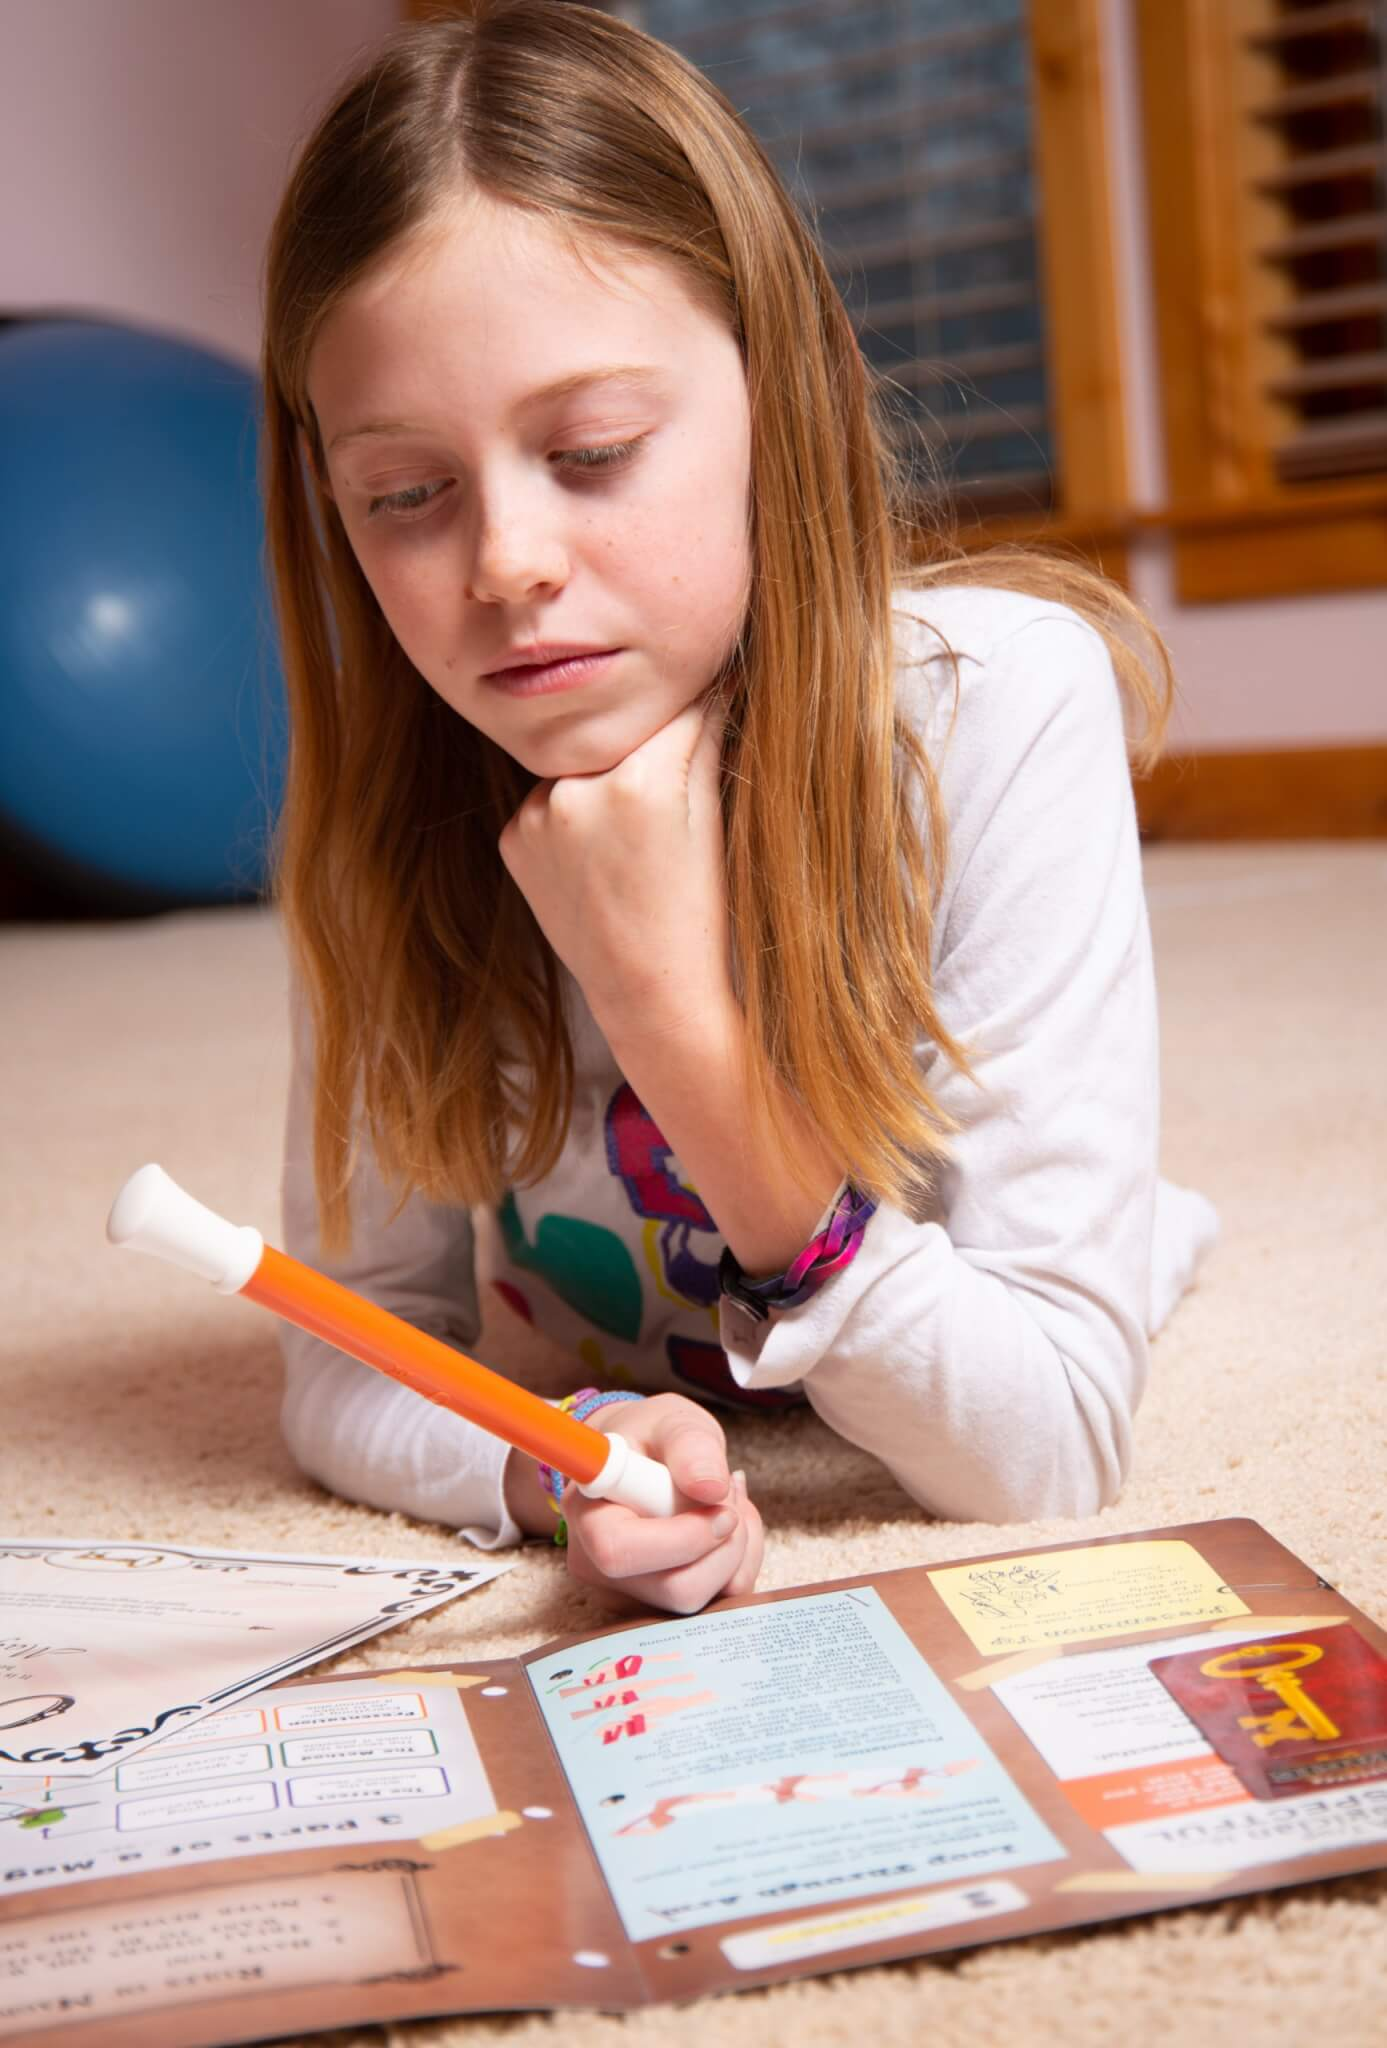 Young girl on the floor with magic kit.